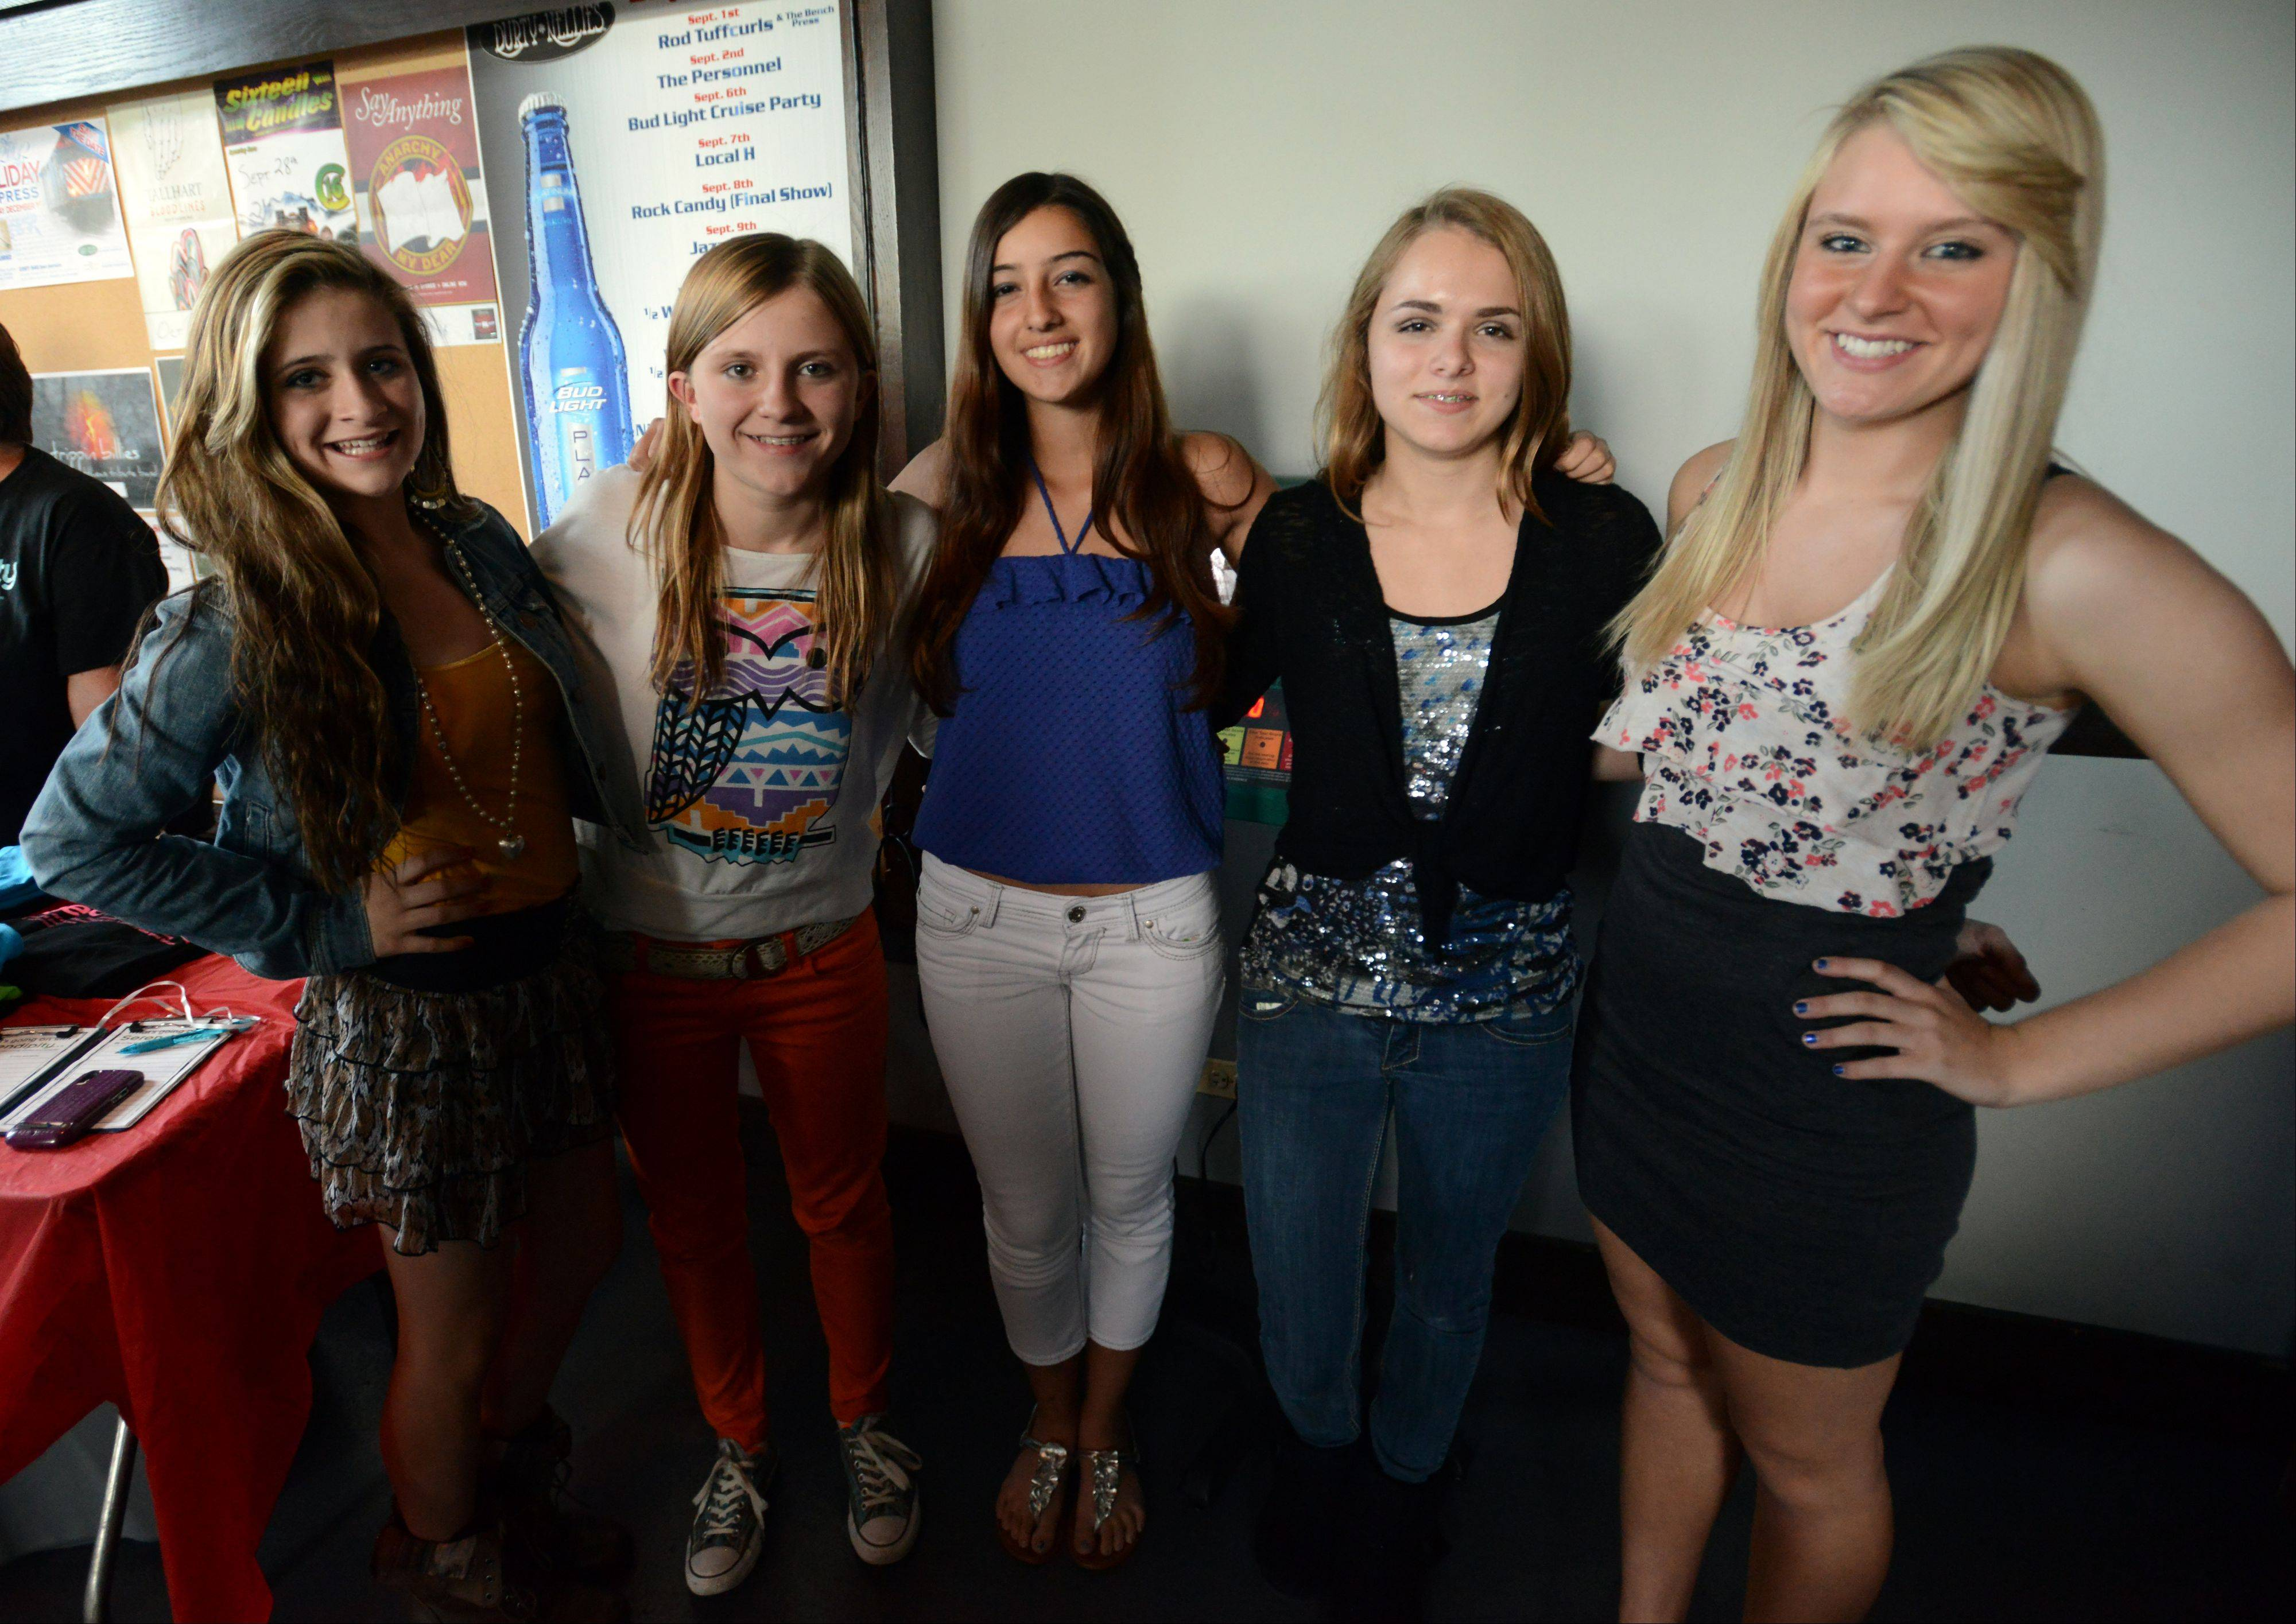 Serendipity band members Josie Treffy, 15, of South Elgin, Haley Blomquist, 15, of Elk Grove Village, Daniella Ballarino, 16, of Mount Prospect, and Anneliese Schulz, 15, of Elk Grove Village, with Lizzy Petitt, 15, of Arlington Heights, get ready to hit the stage.